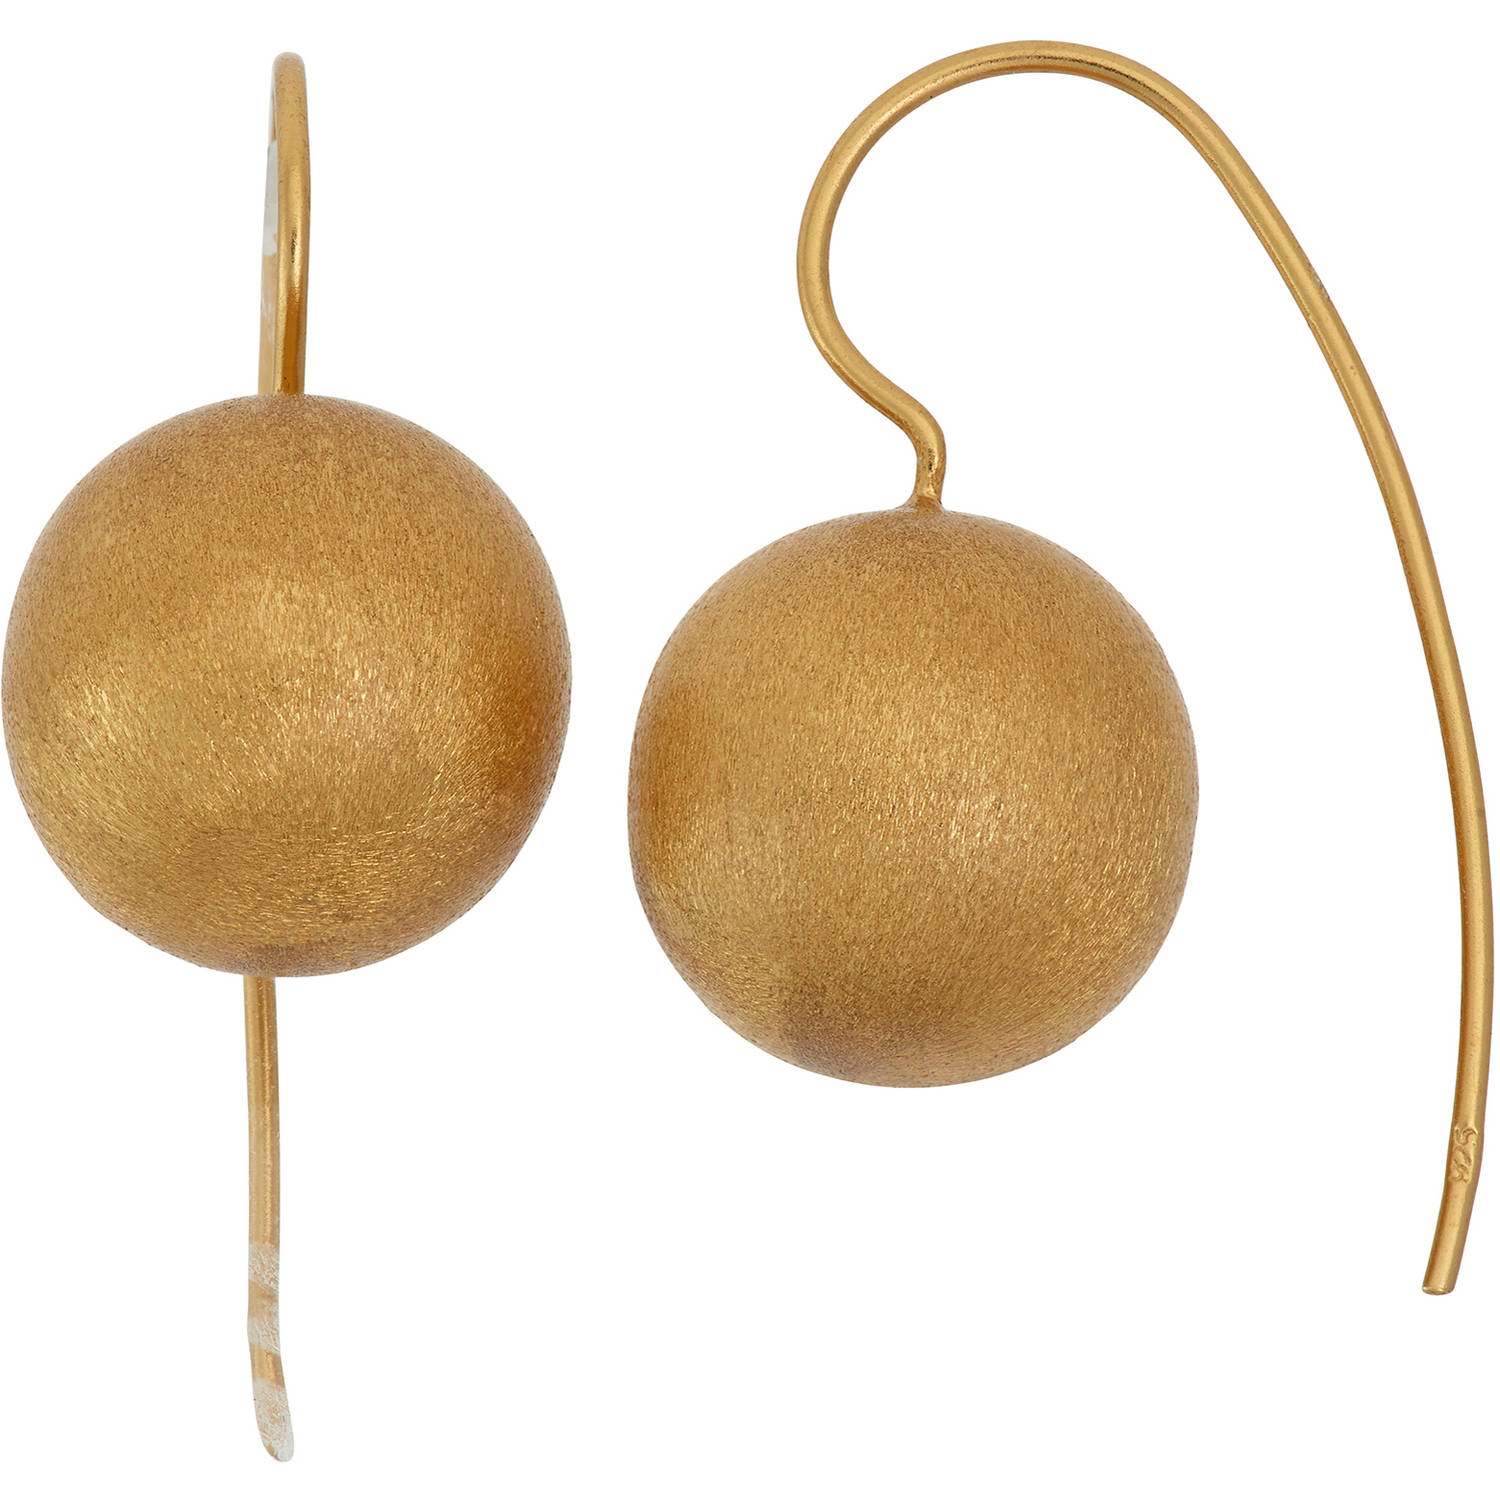 Image of 5th & Main 14kt Gold-Plated Satin Finish Ball Earrings